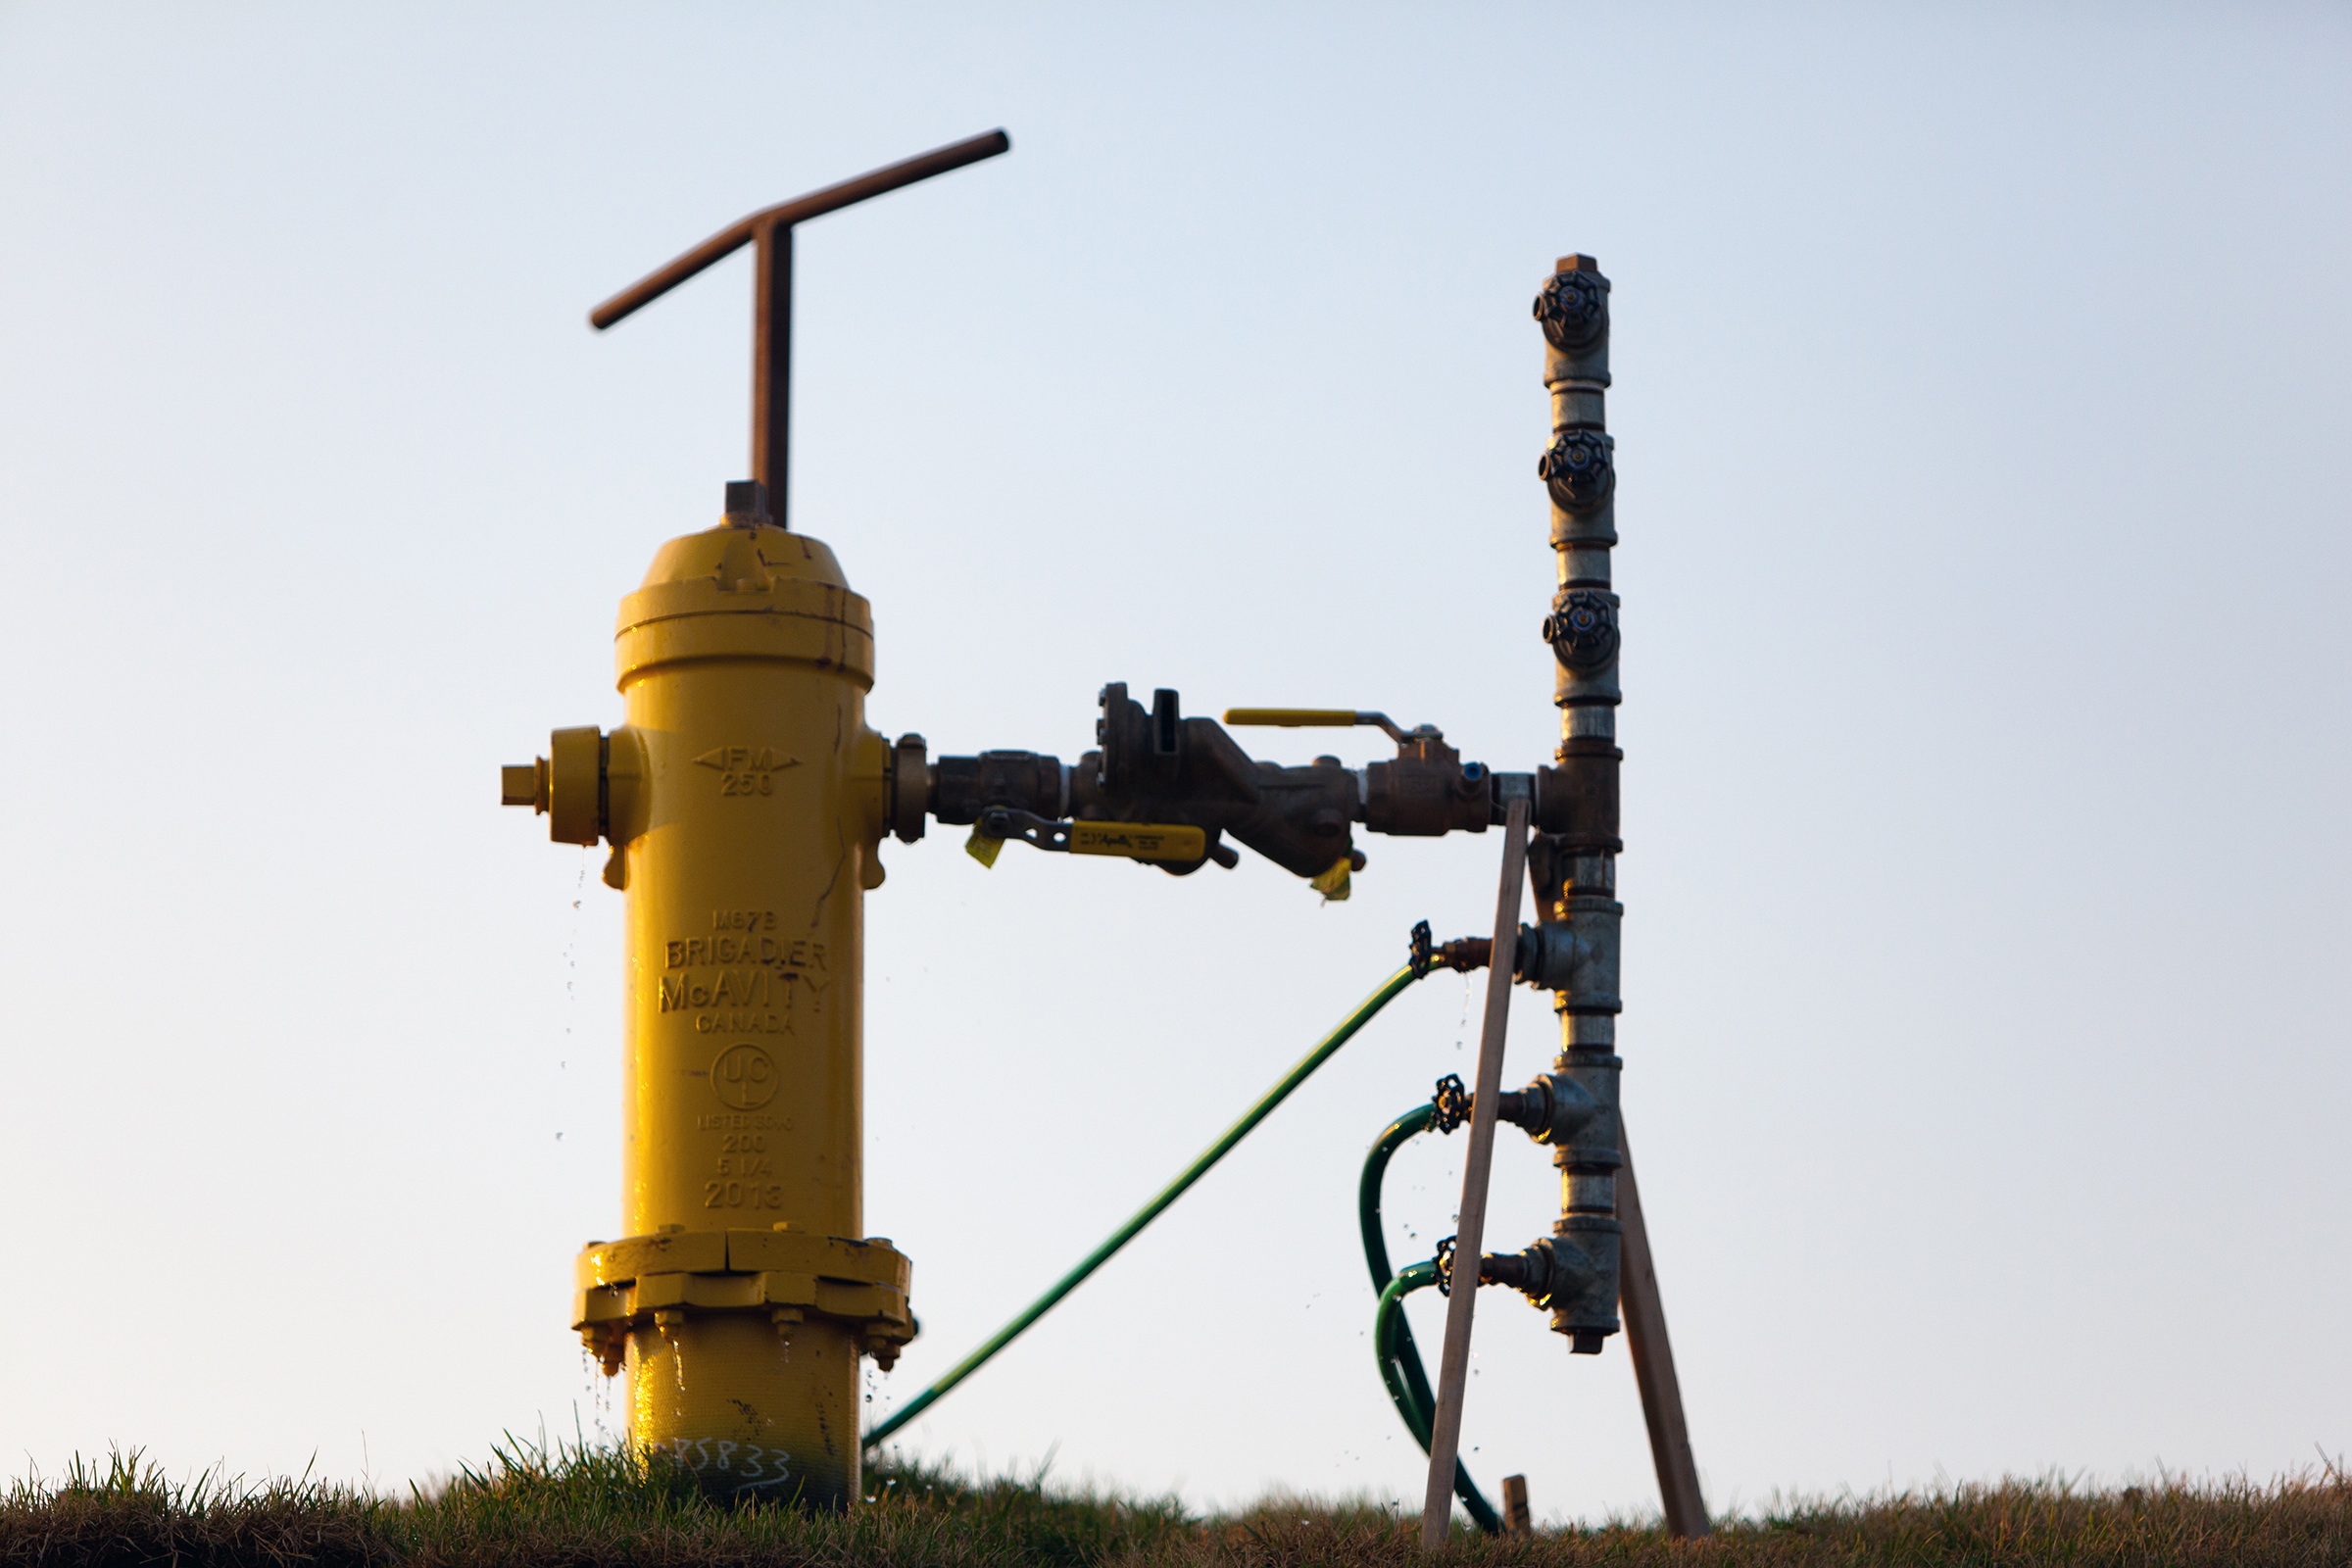 Fire Hydrant, Chain, Pressure, Outlet, Outside, HQ Photo